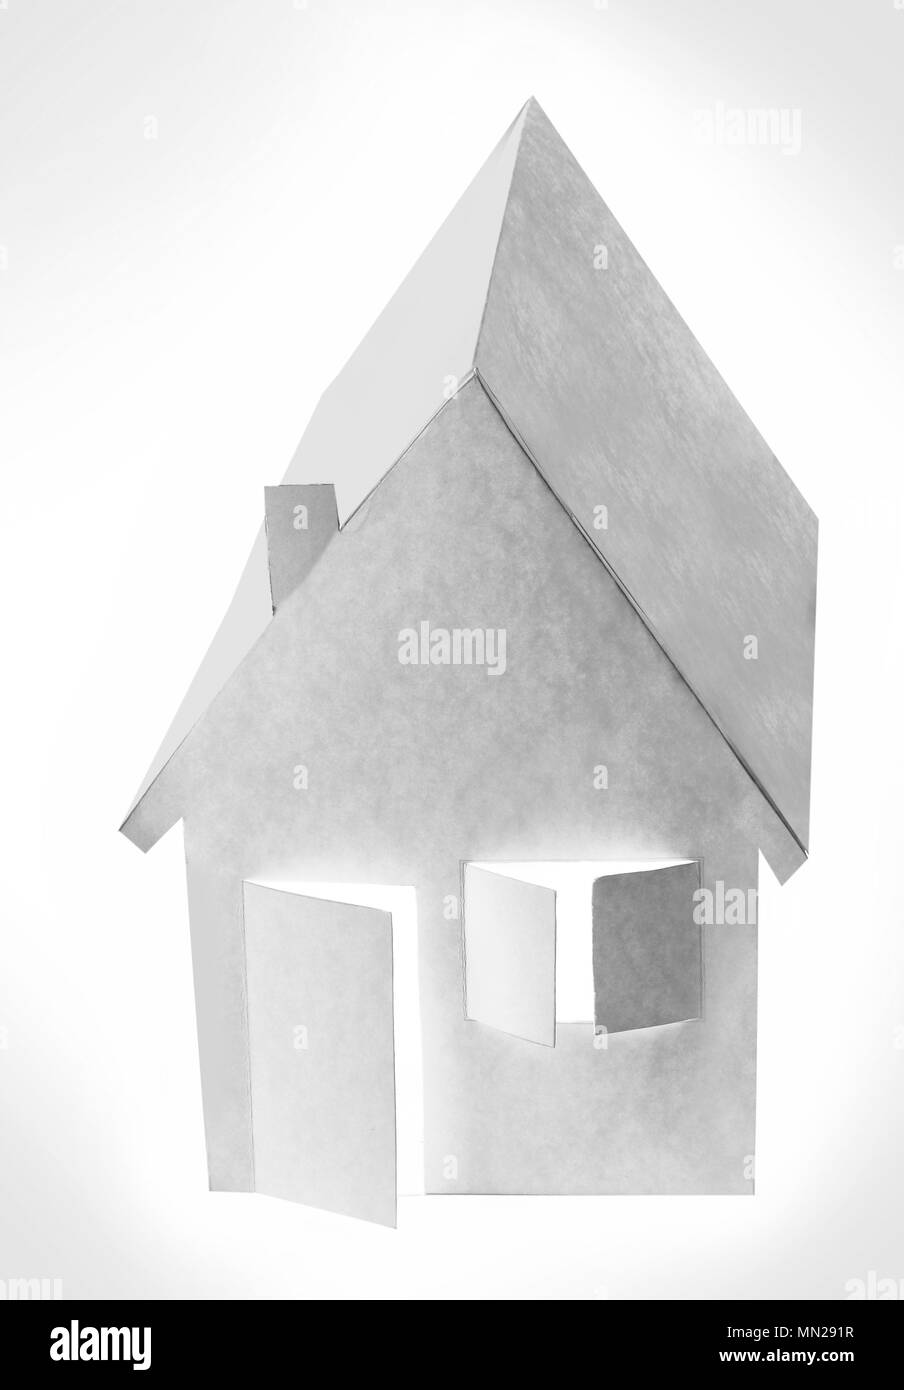 Paper house on a white background with backlight on the window and doors - Stock Image